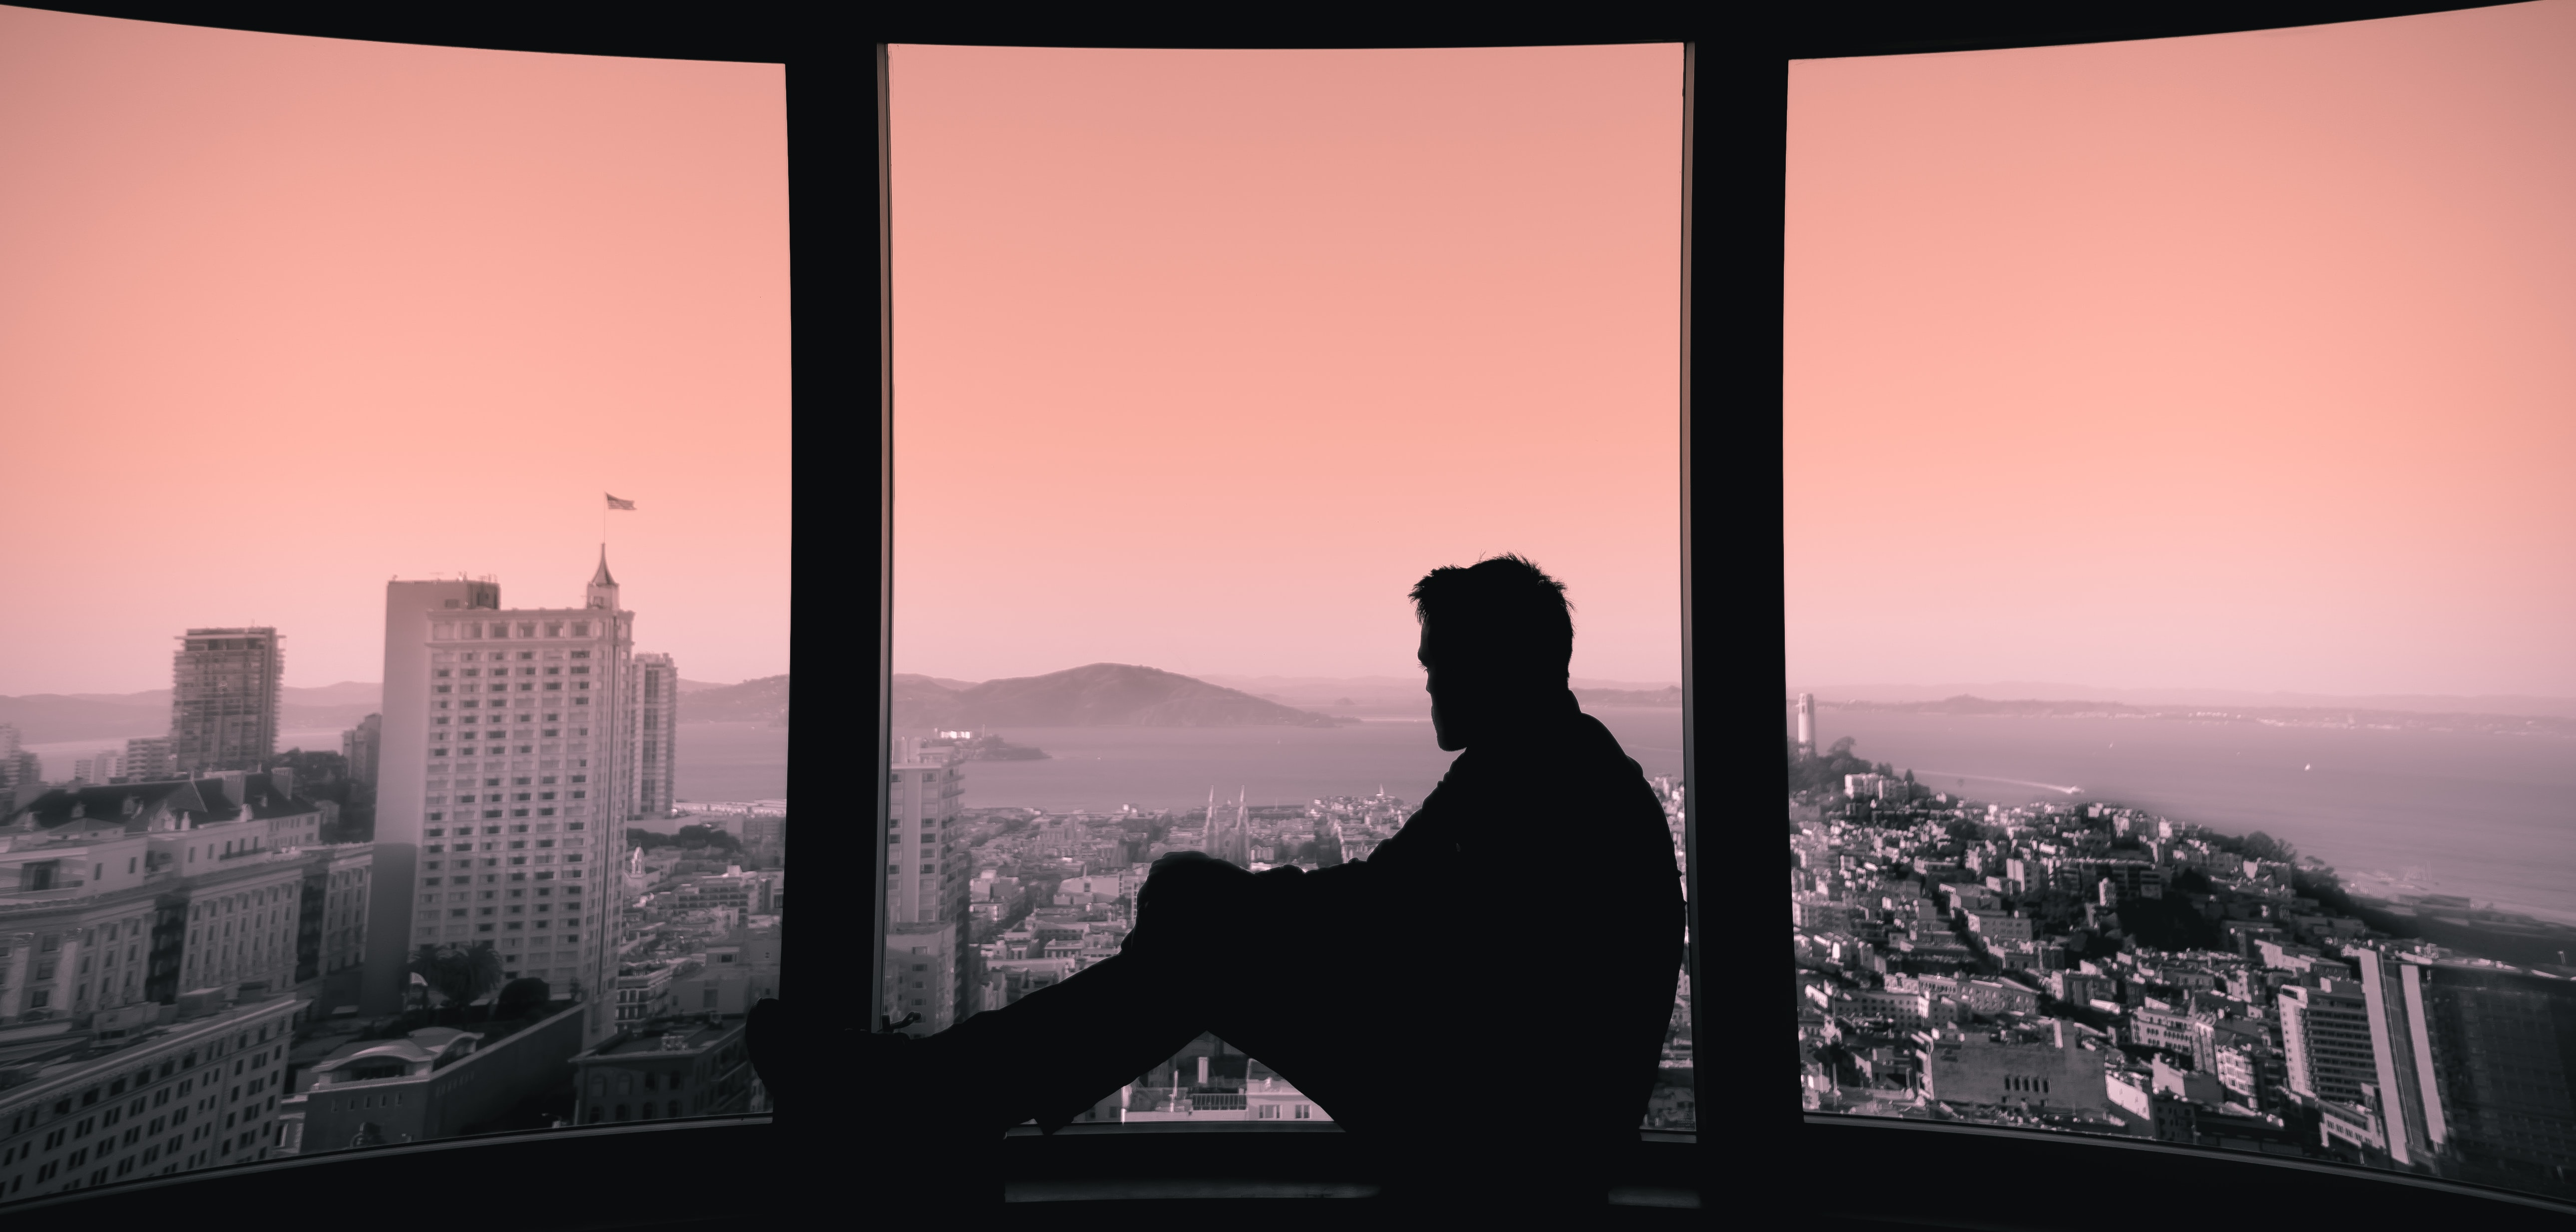 silhouette of person sitting on building's window